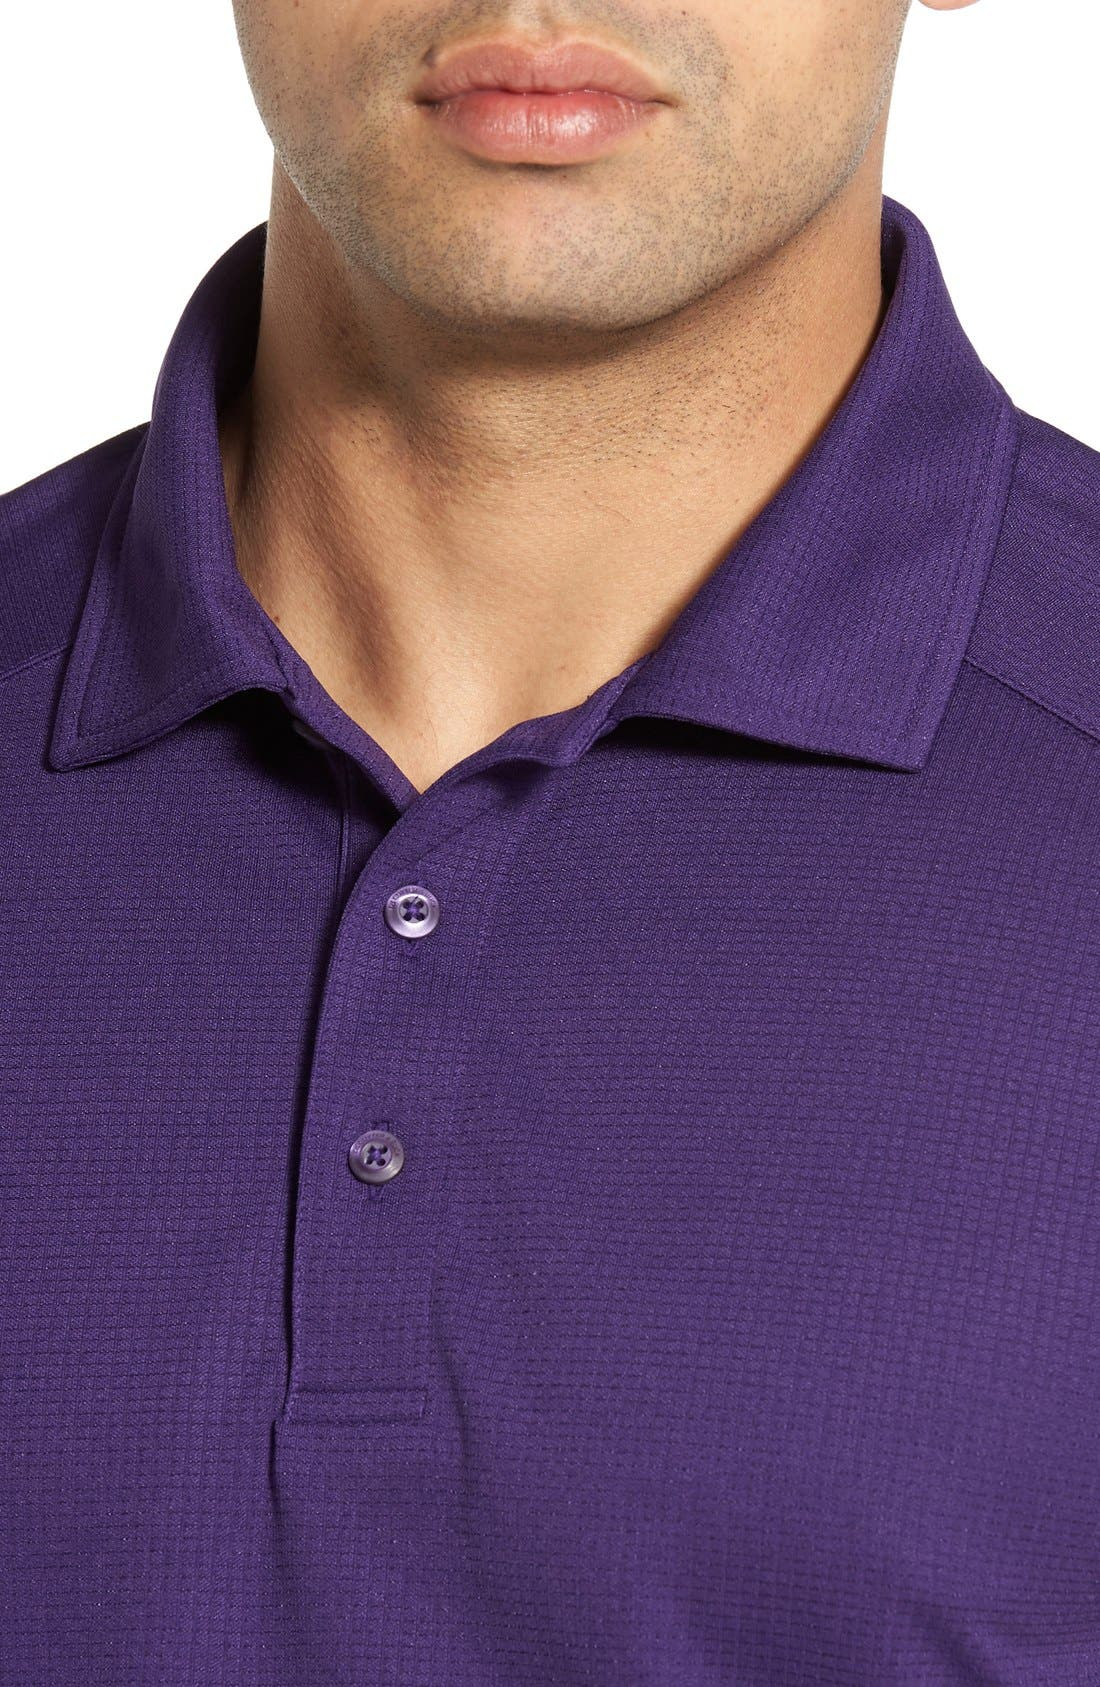 'Genre' DryTec Moisture Wicking Polo,                             Alternate thumbnail 5, color,                             COLLEGE PURPLE